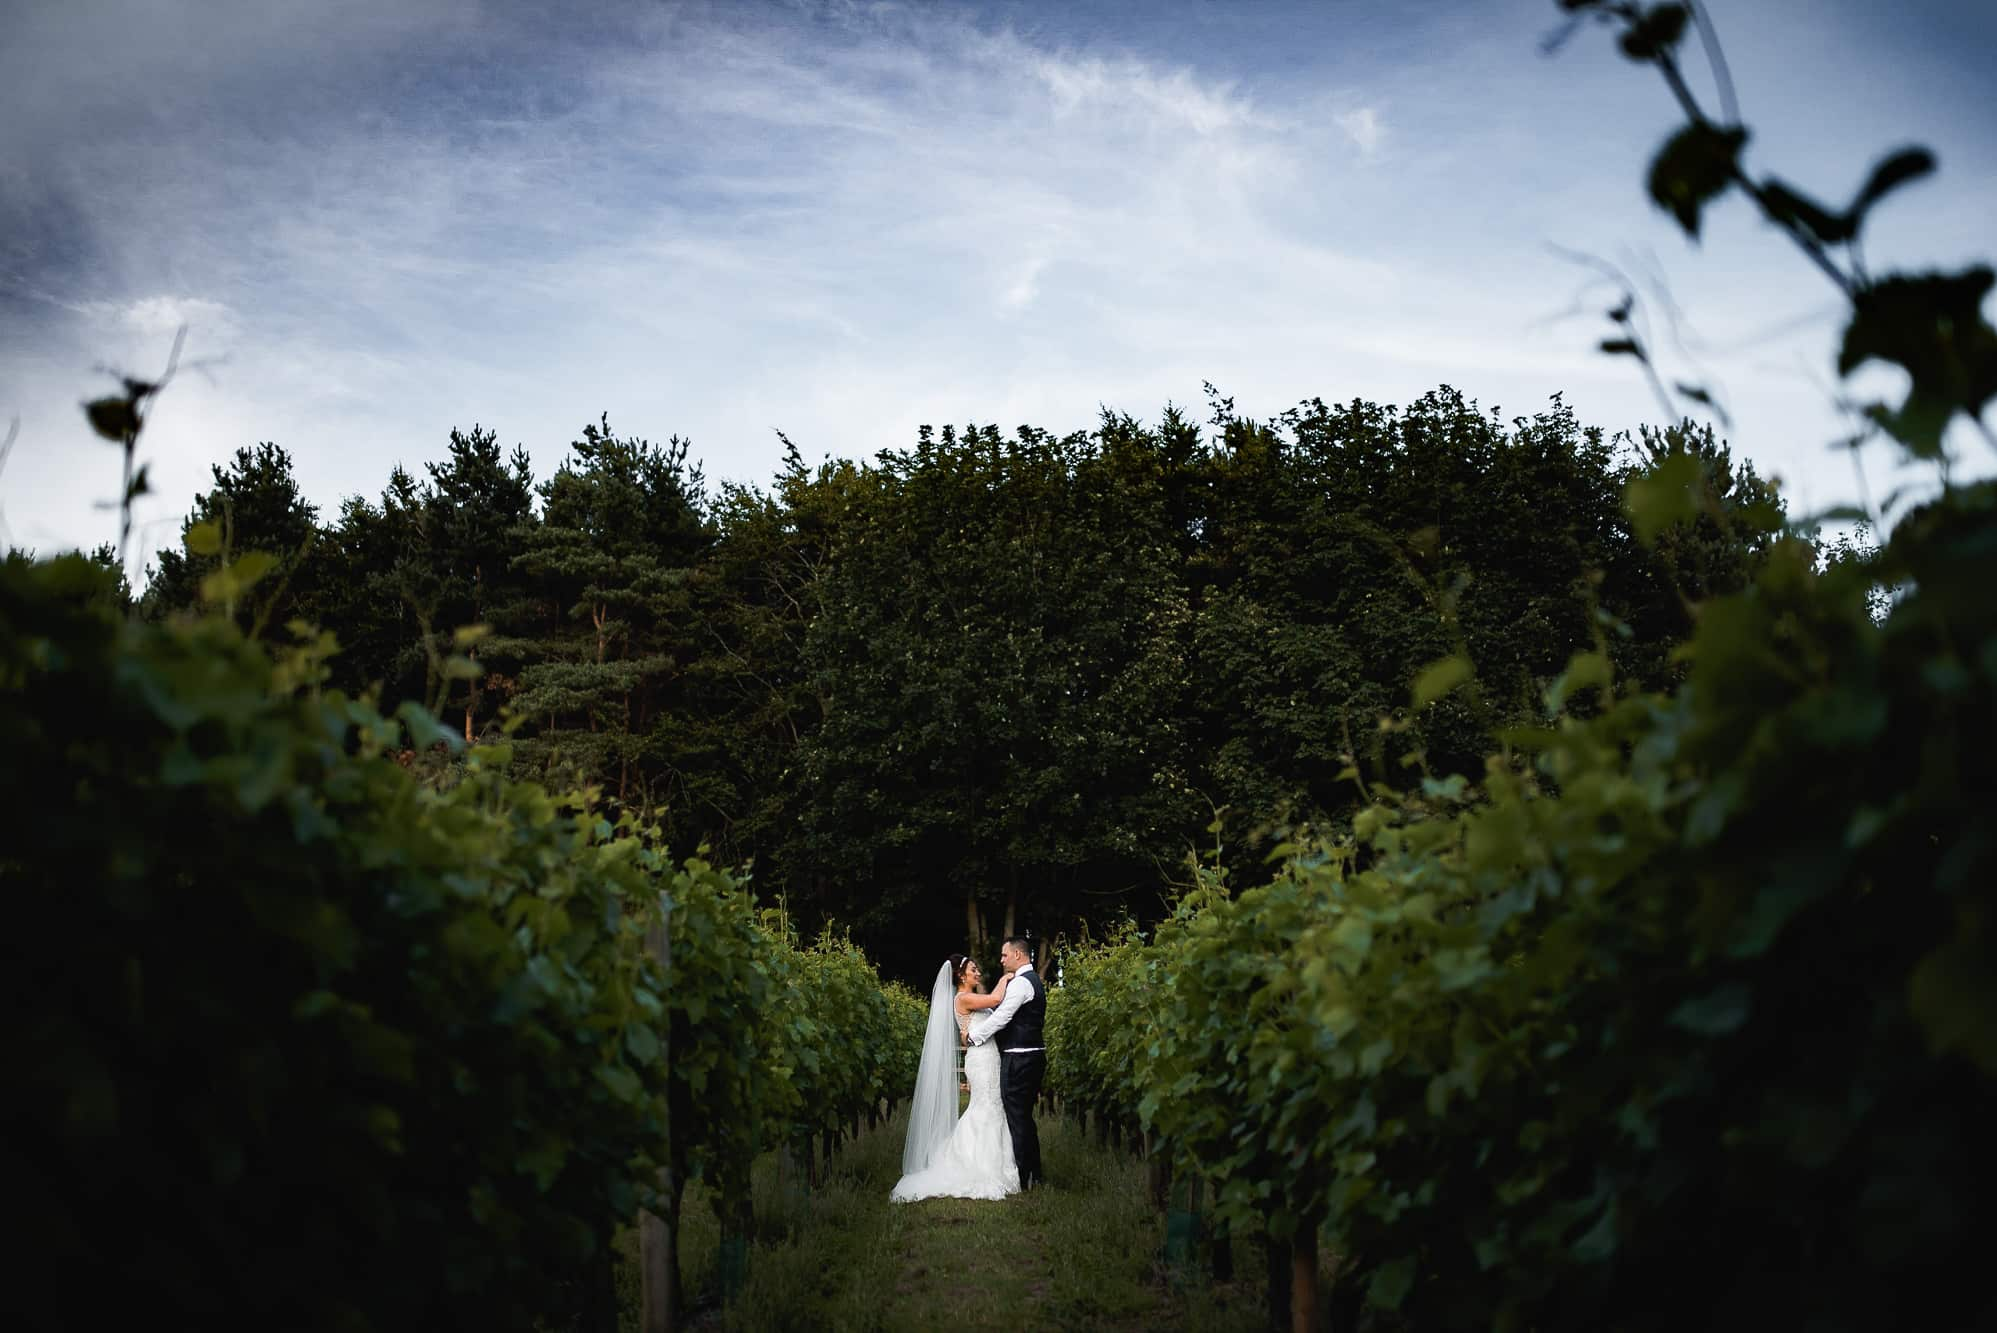 Bride and groom in the winery